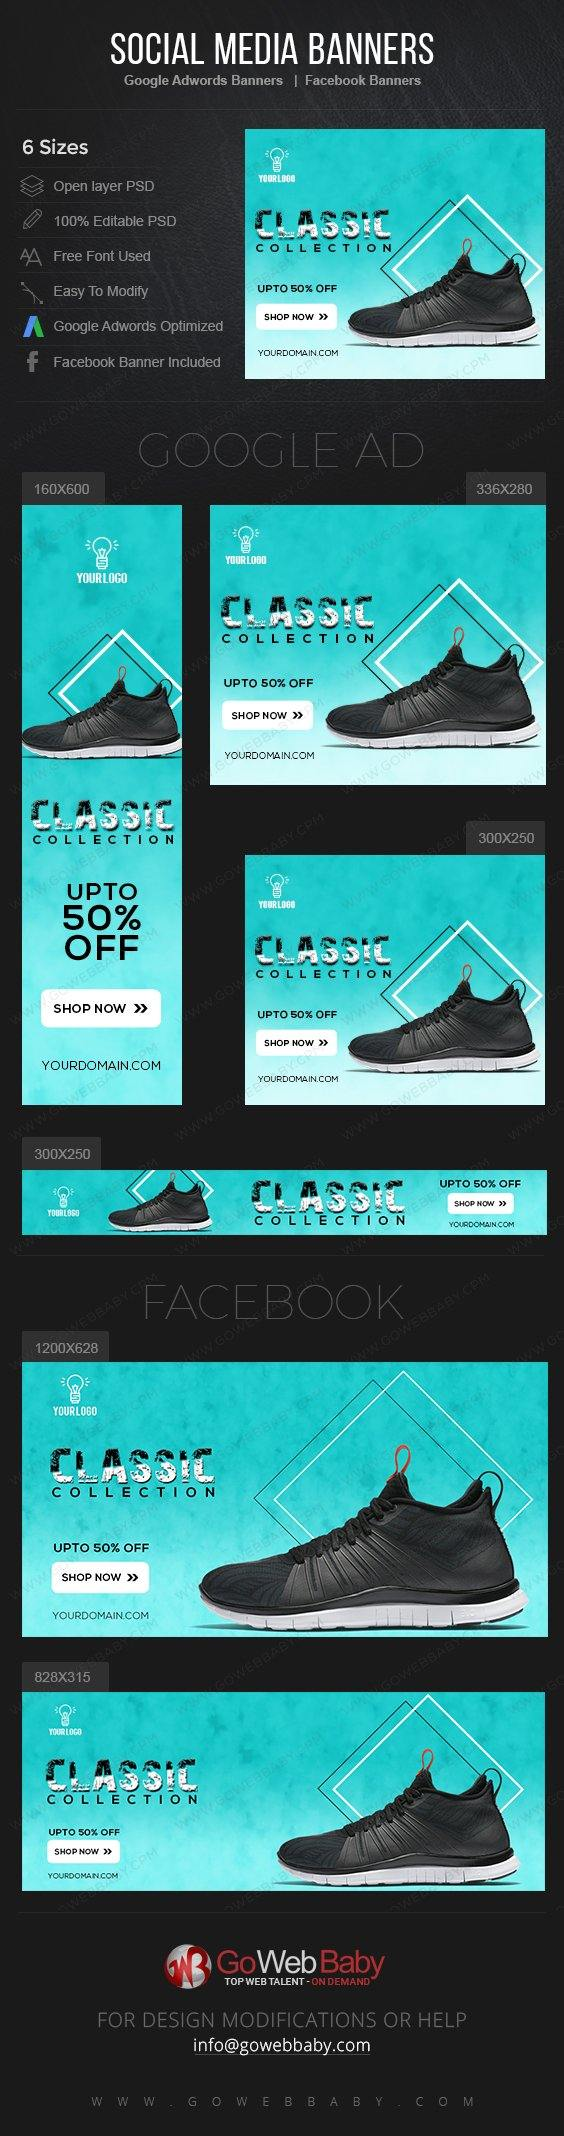 Google Adwords Display Banner with Facebook banners - Sneakers For Men - GoWebBaby.Com